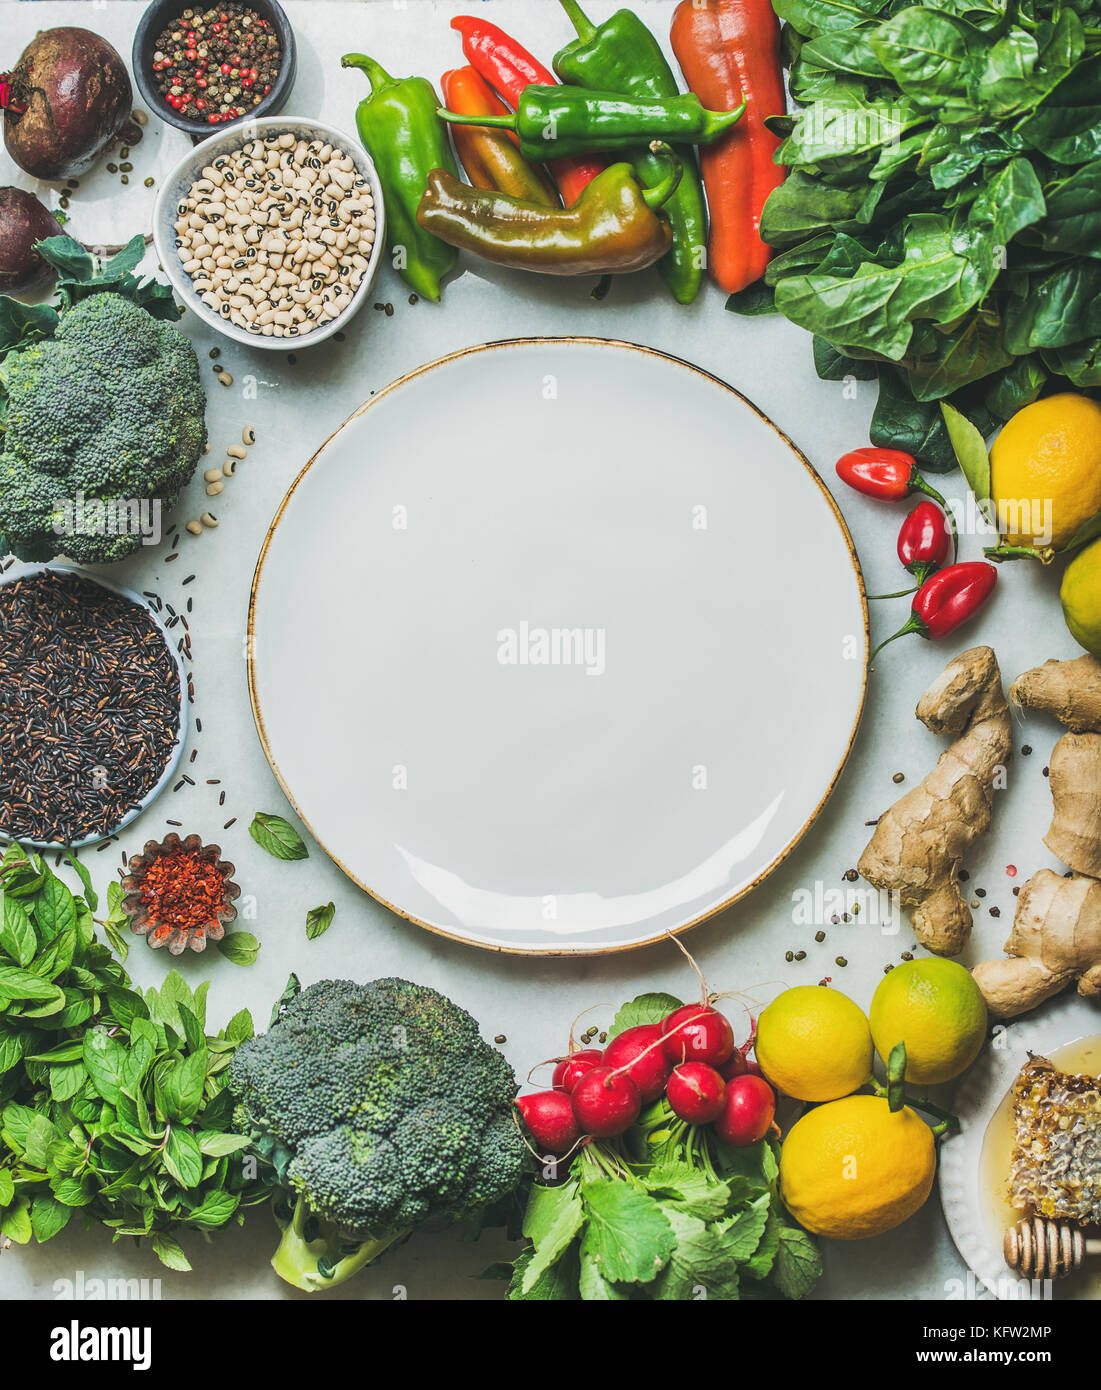 Clean eating healthy cooking ingredients and round plate in center - Stock Image